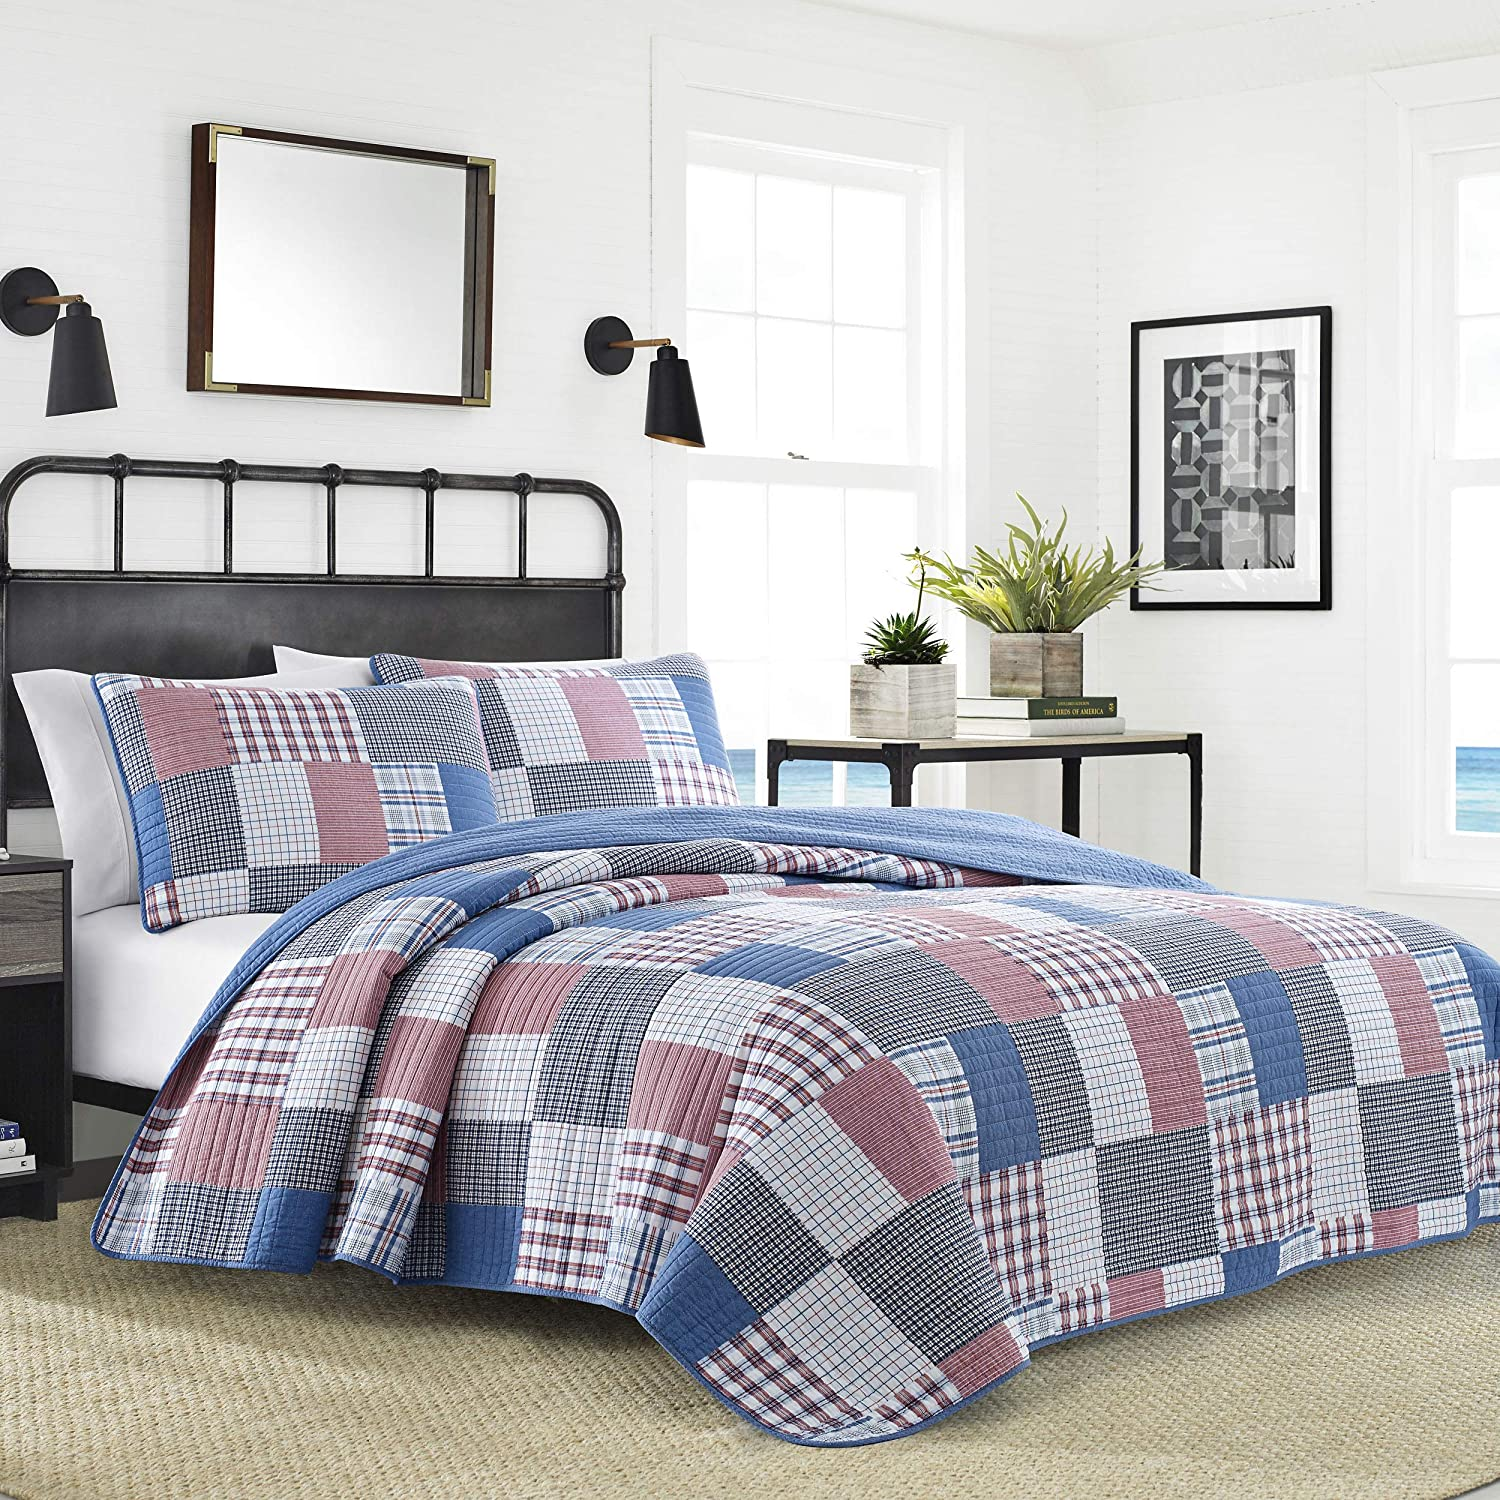 Nautica Seaside Patchwork Quilt Set Full Queen bluee